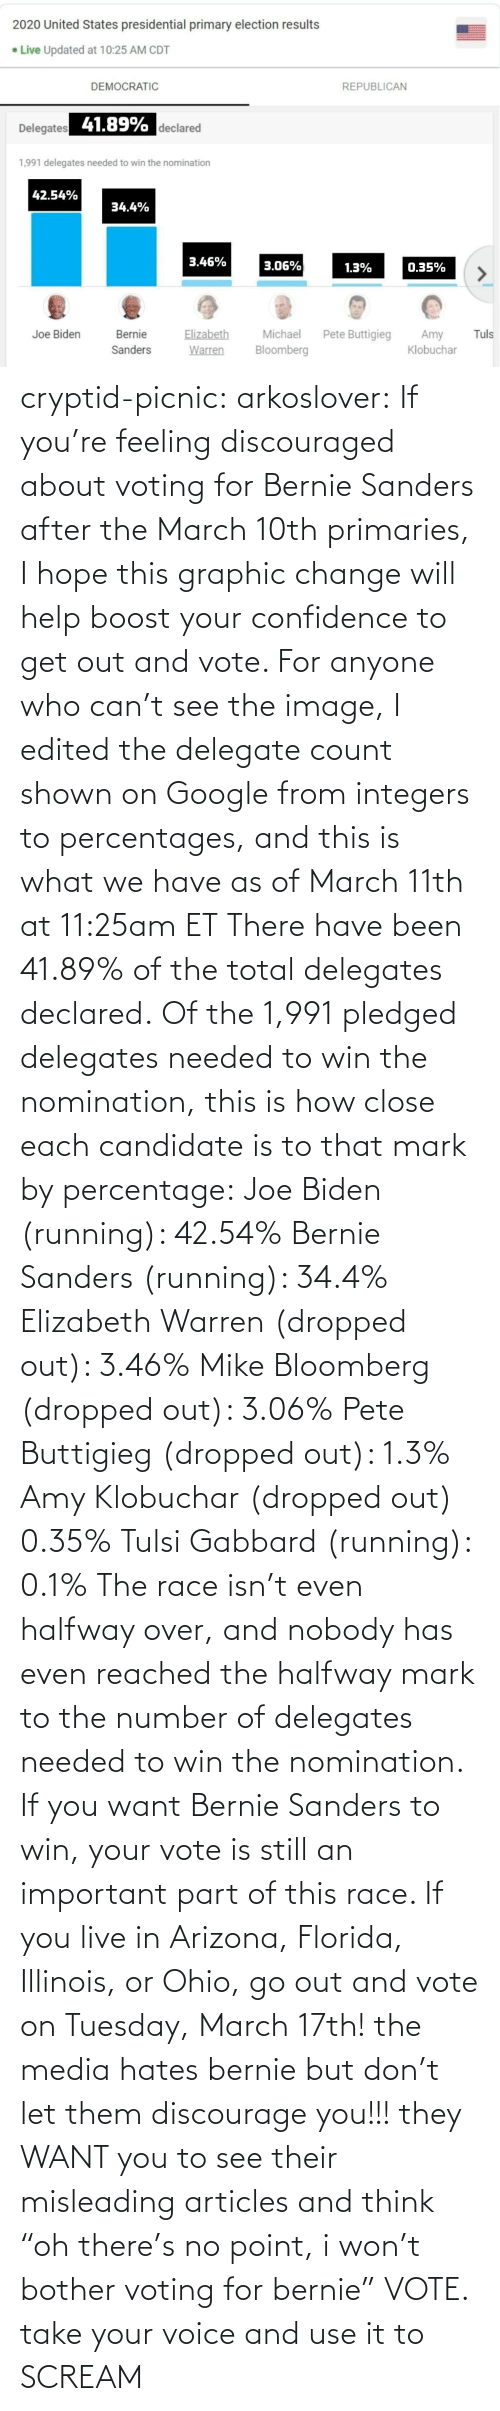 "Bernie Sanders, Confidence, and Elizabeth Warren: cryptid-picnic: arkoslover:   If you're feeling discouraged about voting for Bernie Sanders after the March 10th primaries, I hope this graphic change will help boost your confidence to get out and vote. For anyone who can't see the image, I edited the delegate count shown on Google from integers to percentages, and this is what we have as of March 11th at 11:25am ET There have been 41.89% of the total delegates declared. Of the 1,991 pledged delegates needed to win the nomination, this is how close each candidate is to that mark by percentage: Joe Biden (running): 42.54% Bernie Sanders (running): 34.4% Elizabeth Warren (dropped out): 3.46% Mike Bloomberg (dropped out): 3.06% Pete Buttigieg (dropped out): 1.3% Amy Klobuchar (dropped out) 0.35% Tulsi Gabbard (running): 0.1% The race isn't even halfway over, and nobody has even reached the halfway mark to the number of delegates needed to win the nomination. If you want Bernie Sanders to win, your vote is still an important part of this race. If you live in Arizona, Florida, Illinois, or Ohio, go out and vote on Tuesday, March 17th!    the media hates bernie but don't let them discourage you!!! they WANT you to see their misleading articles and think ""oh there's no point, i won't bother voting for bernie"" VOTE. take your voice and use it to SCREAM"